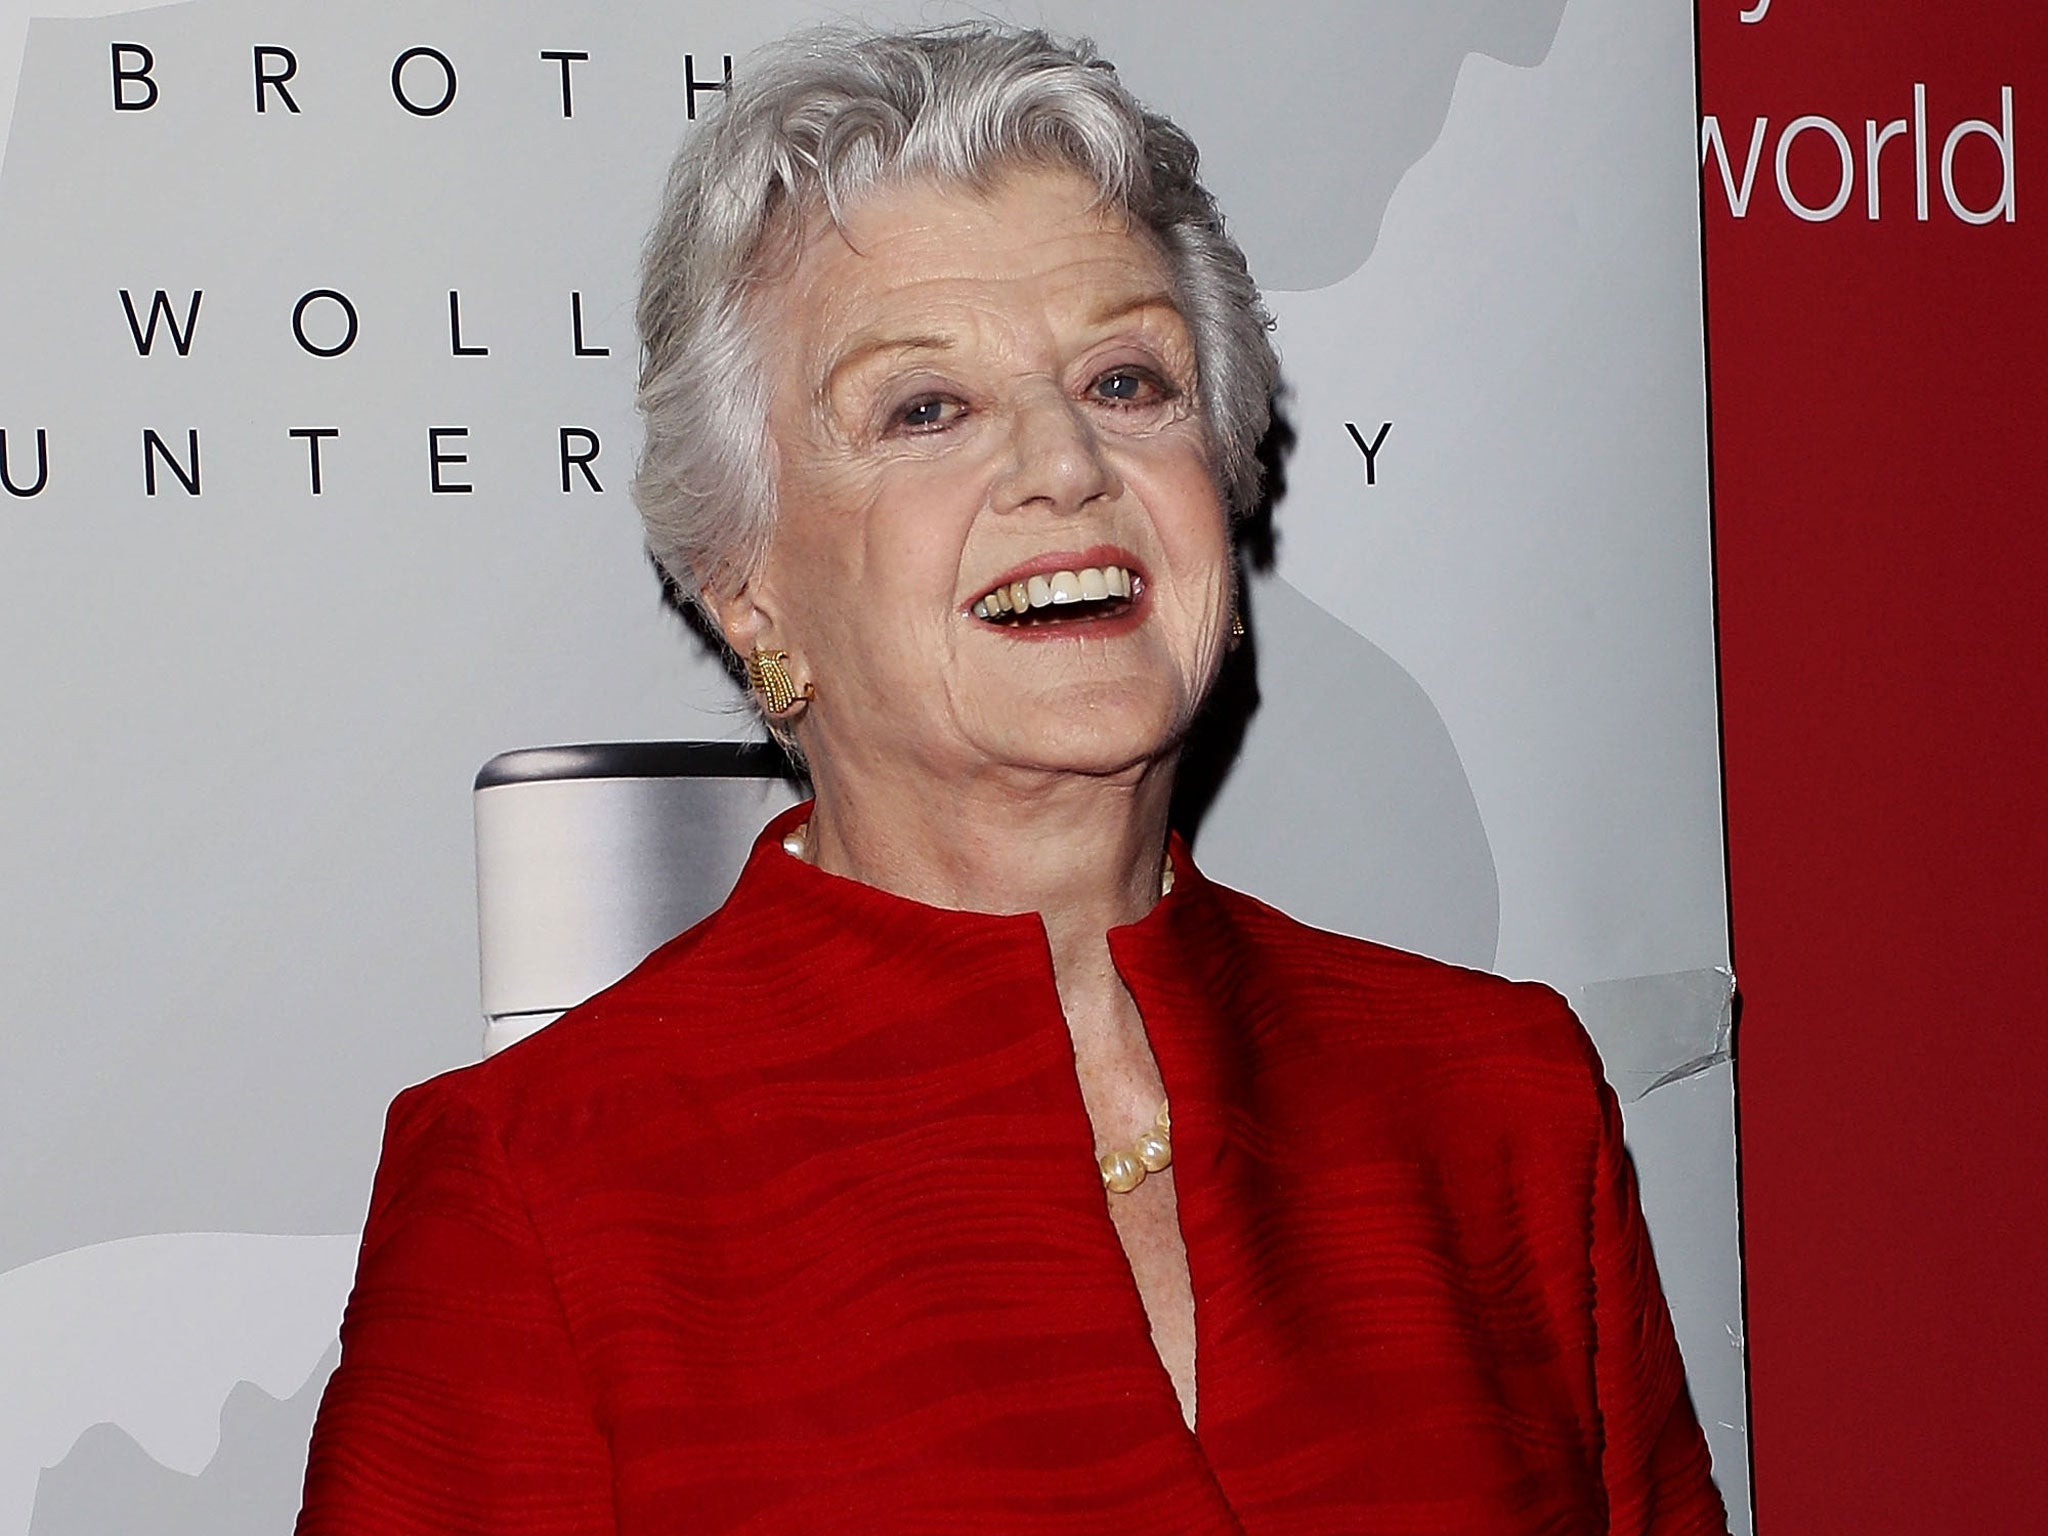 angela lansbury new yorkangela lansbury 2017, angela lansbury young, angela lansbury gif, angela lansbury - beauty and the beast, angela lansbury car, angela lansbury nanny mcphee, angela lansbury fan mail, angela lansbury game of thrones, angela lansbury address, angela lansbury movies, angela lansbury beaty and the beast, angela lansbury interview, angela lansbury mrs lovett, angela lansbury youtube, angela lansbury astrotheme, angela lansbury new york, angela lansbury workout video, angela lansbury 2016, angela lansbury beauty and the beast перевод, angela lansbury twitter